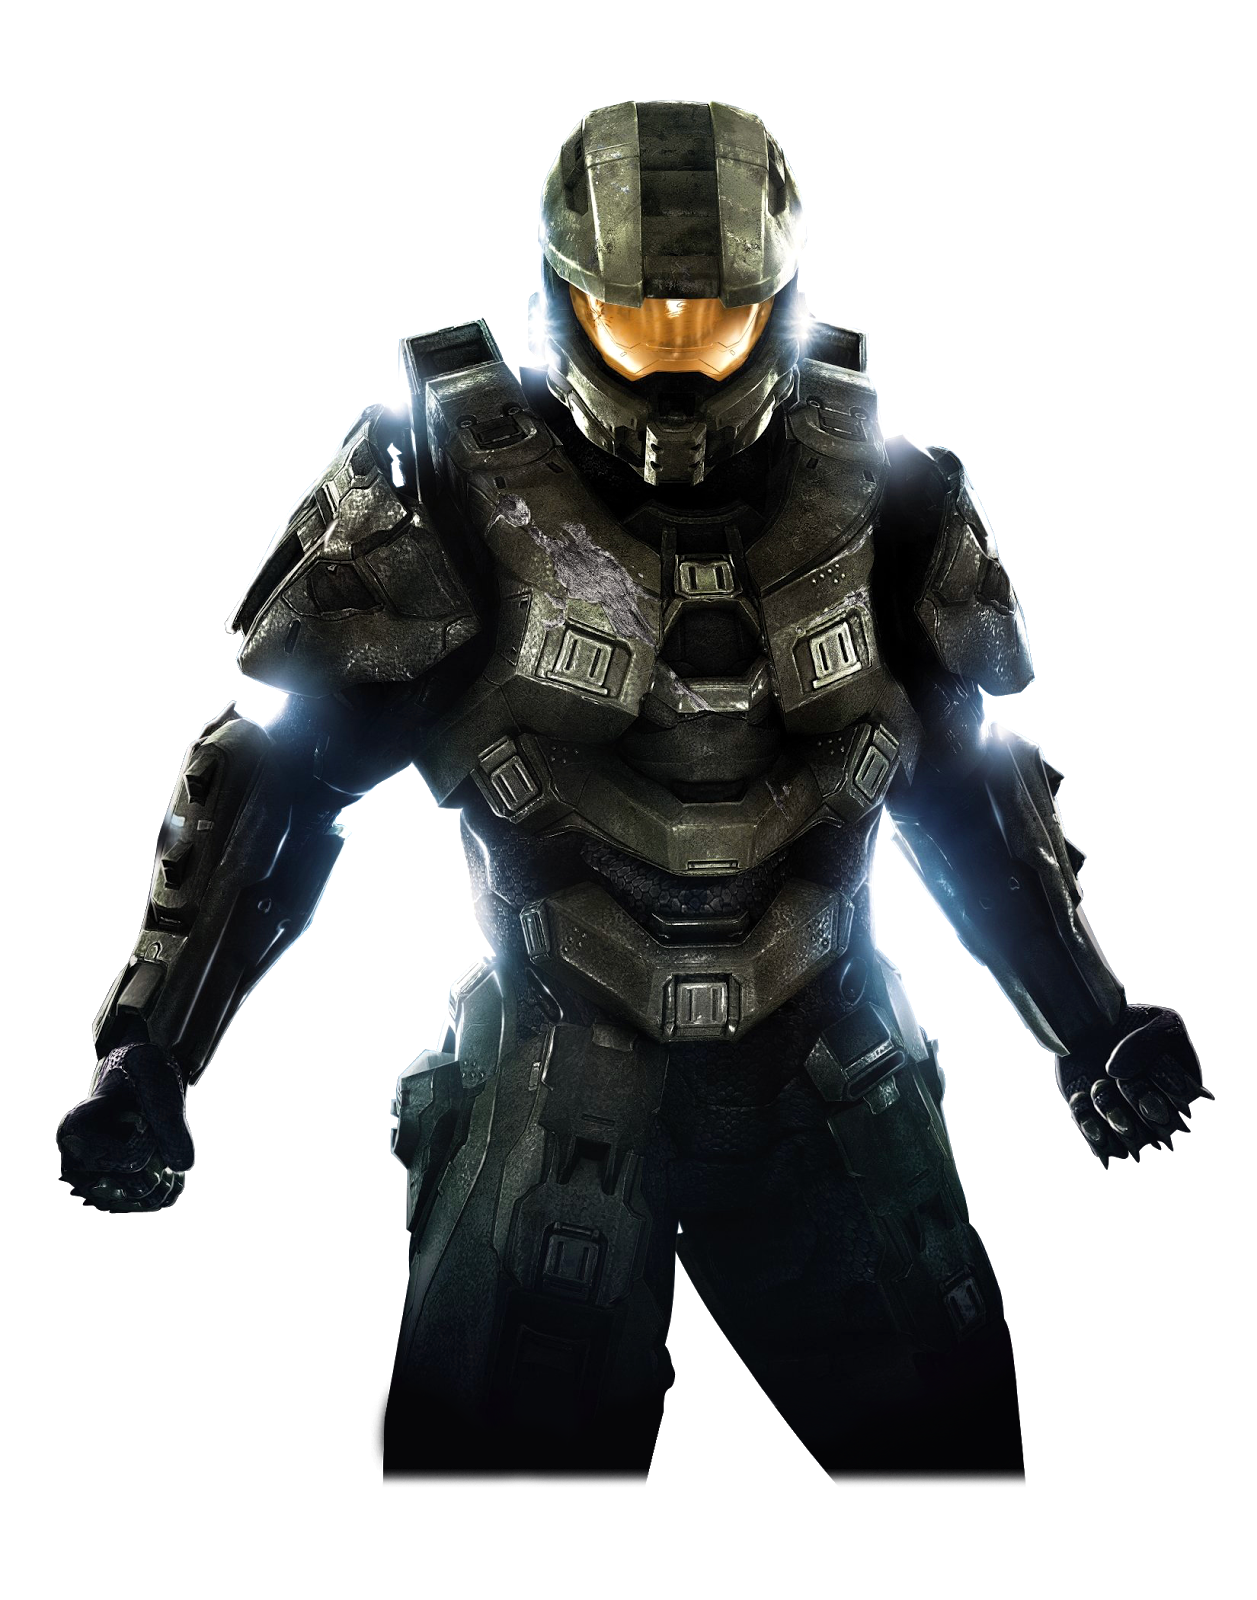 Halo master chief and cortana